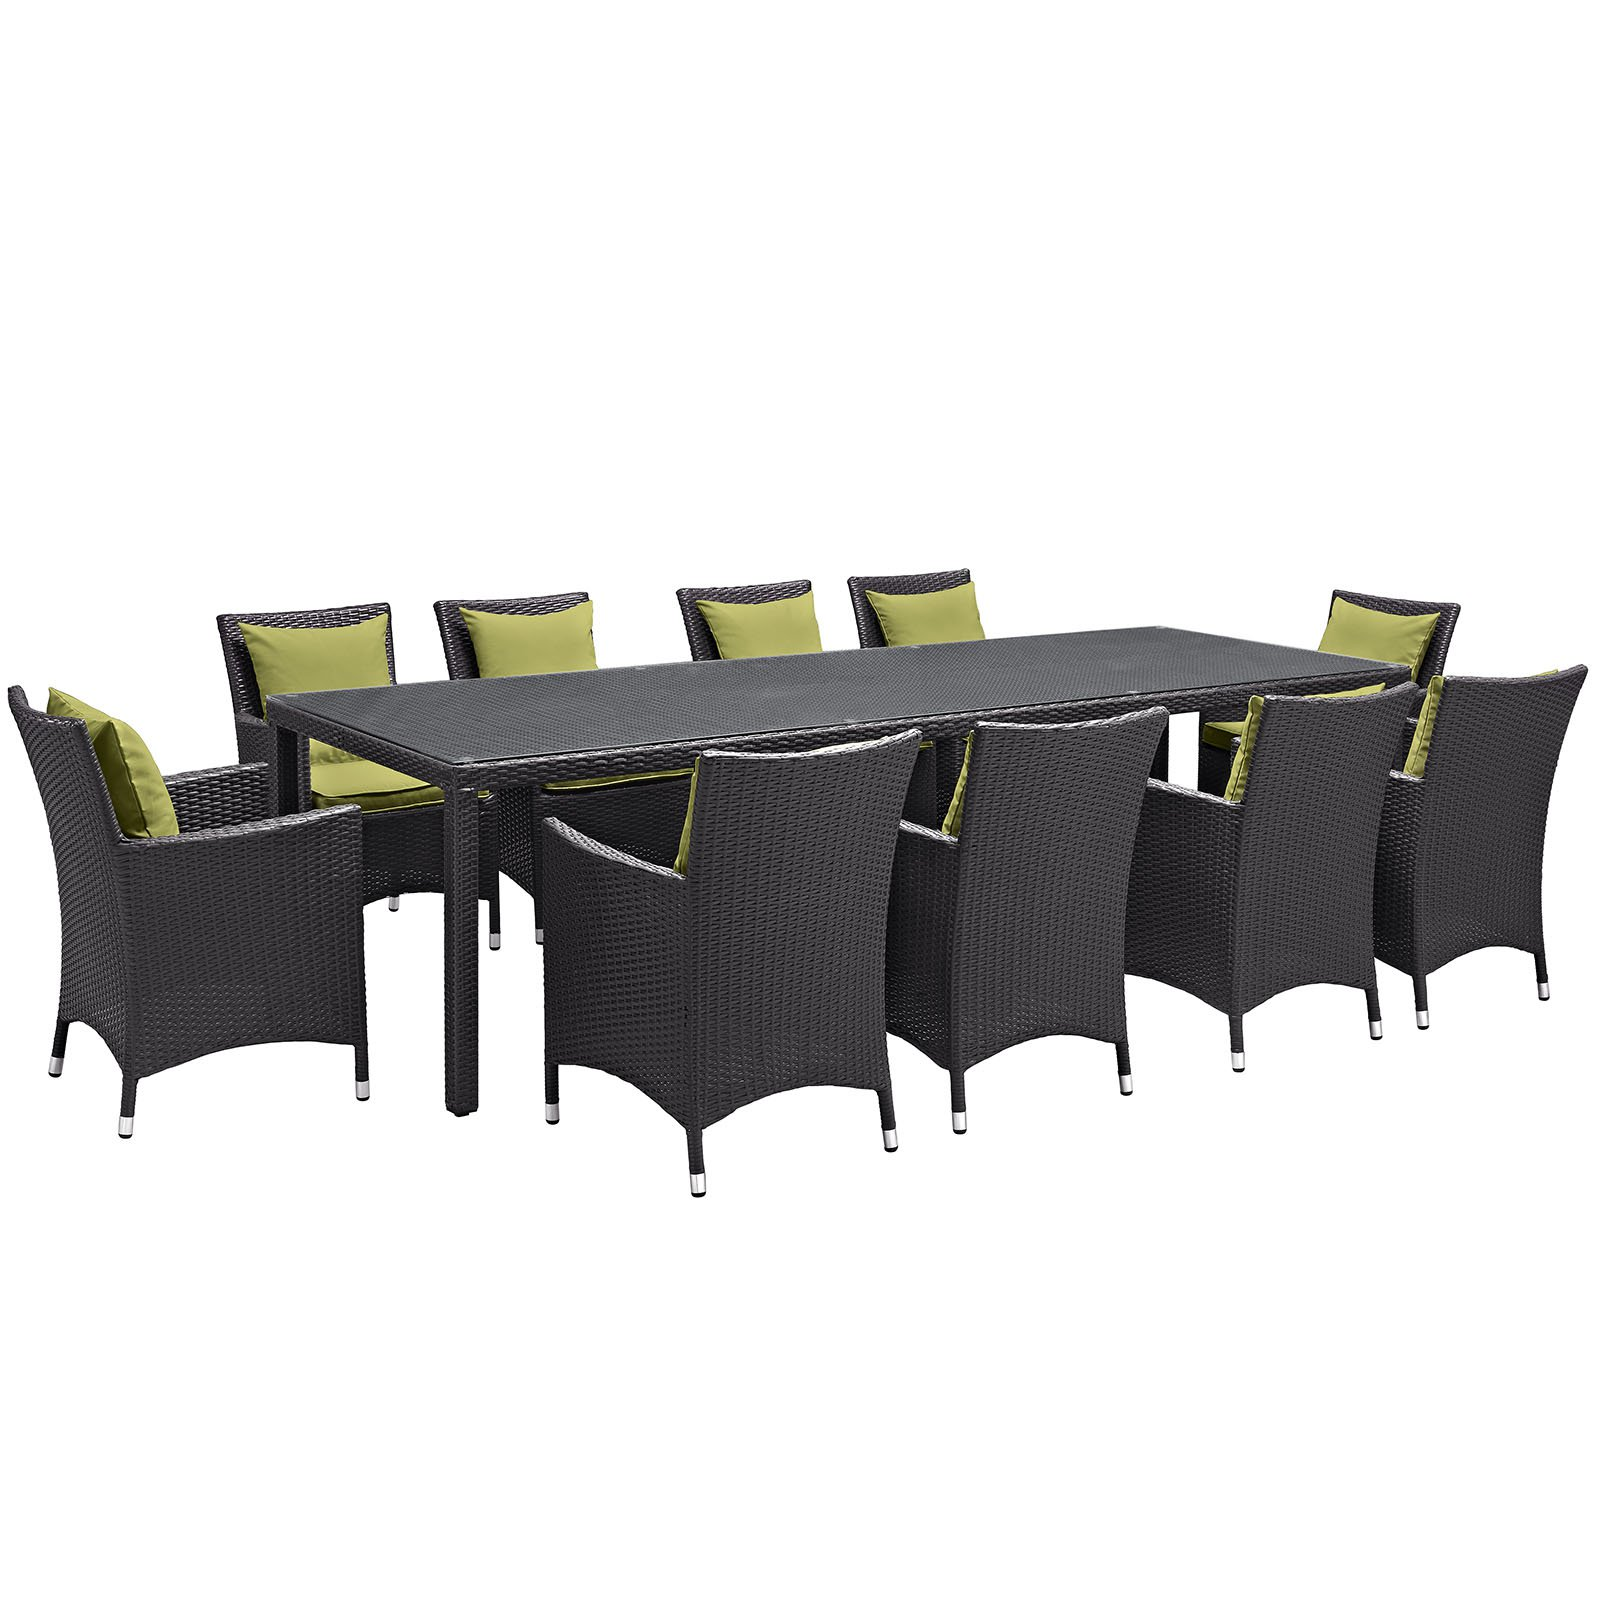 Modway Convene 11 Piece Outdoor Patio Dining Room Set, Multiple Colors by Modway